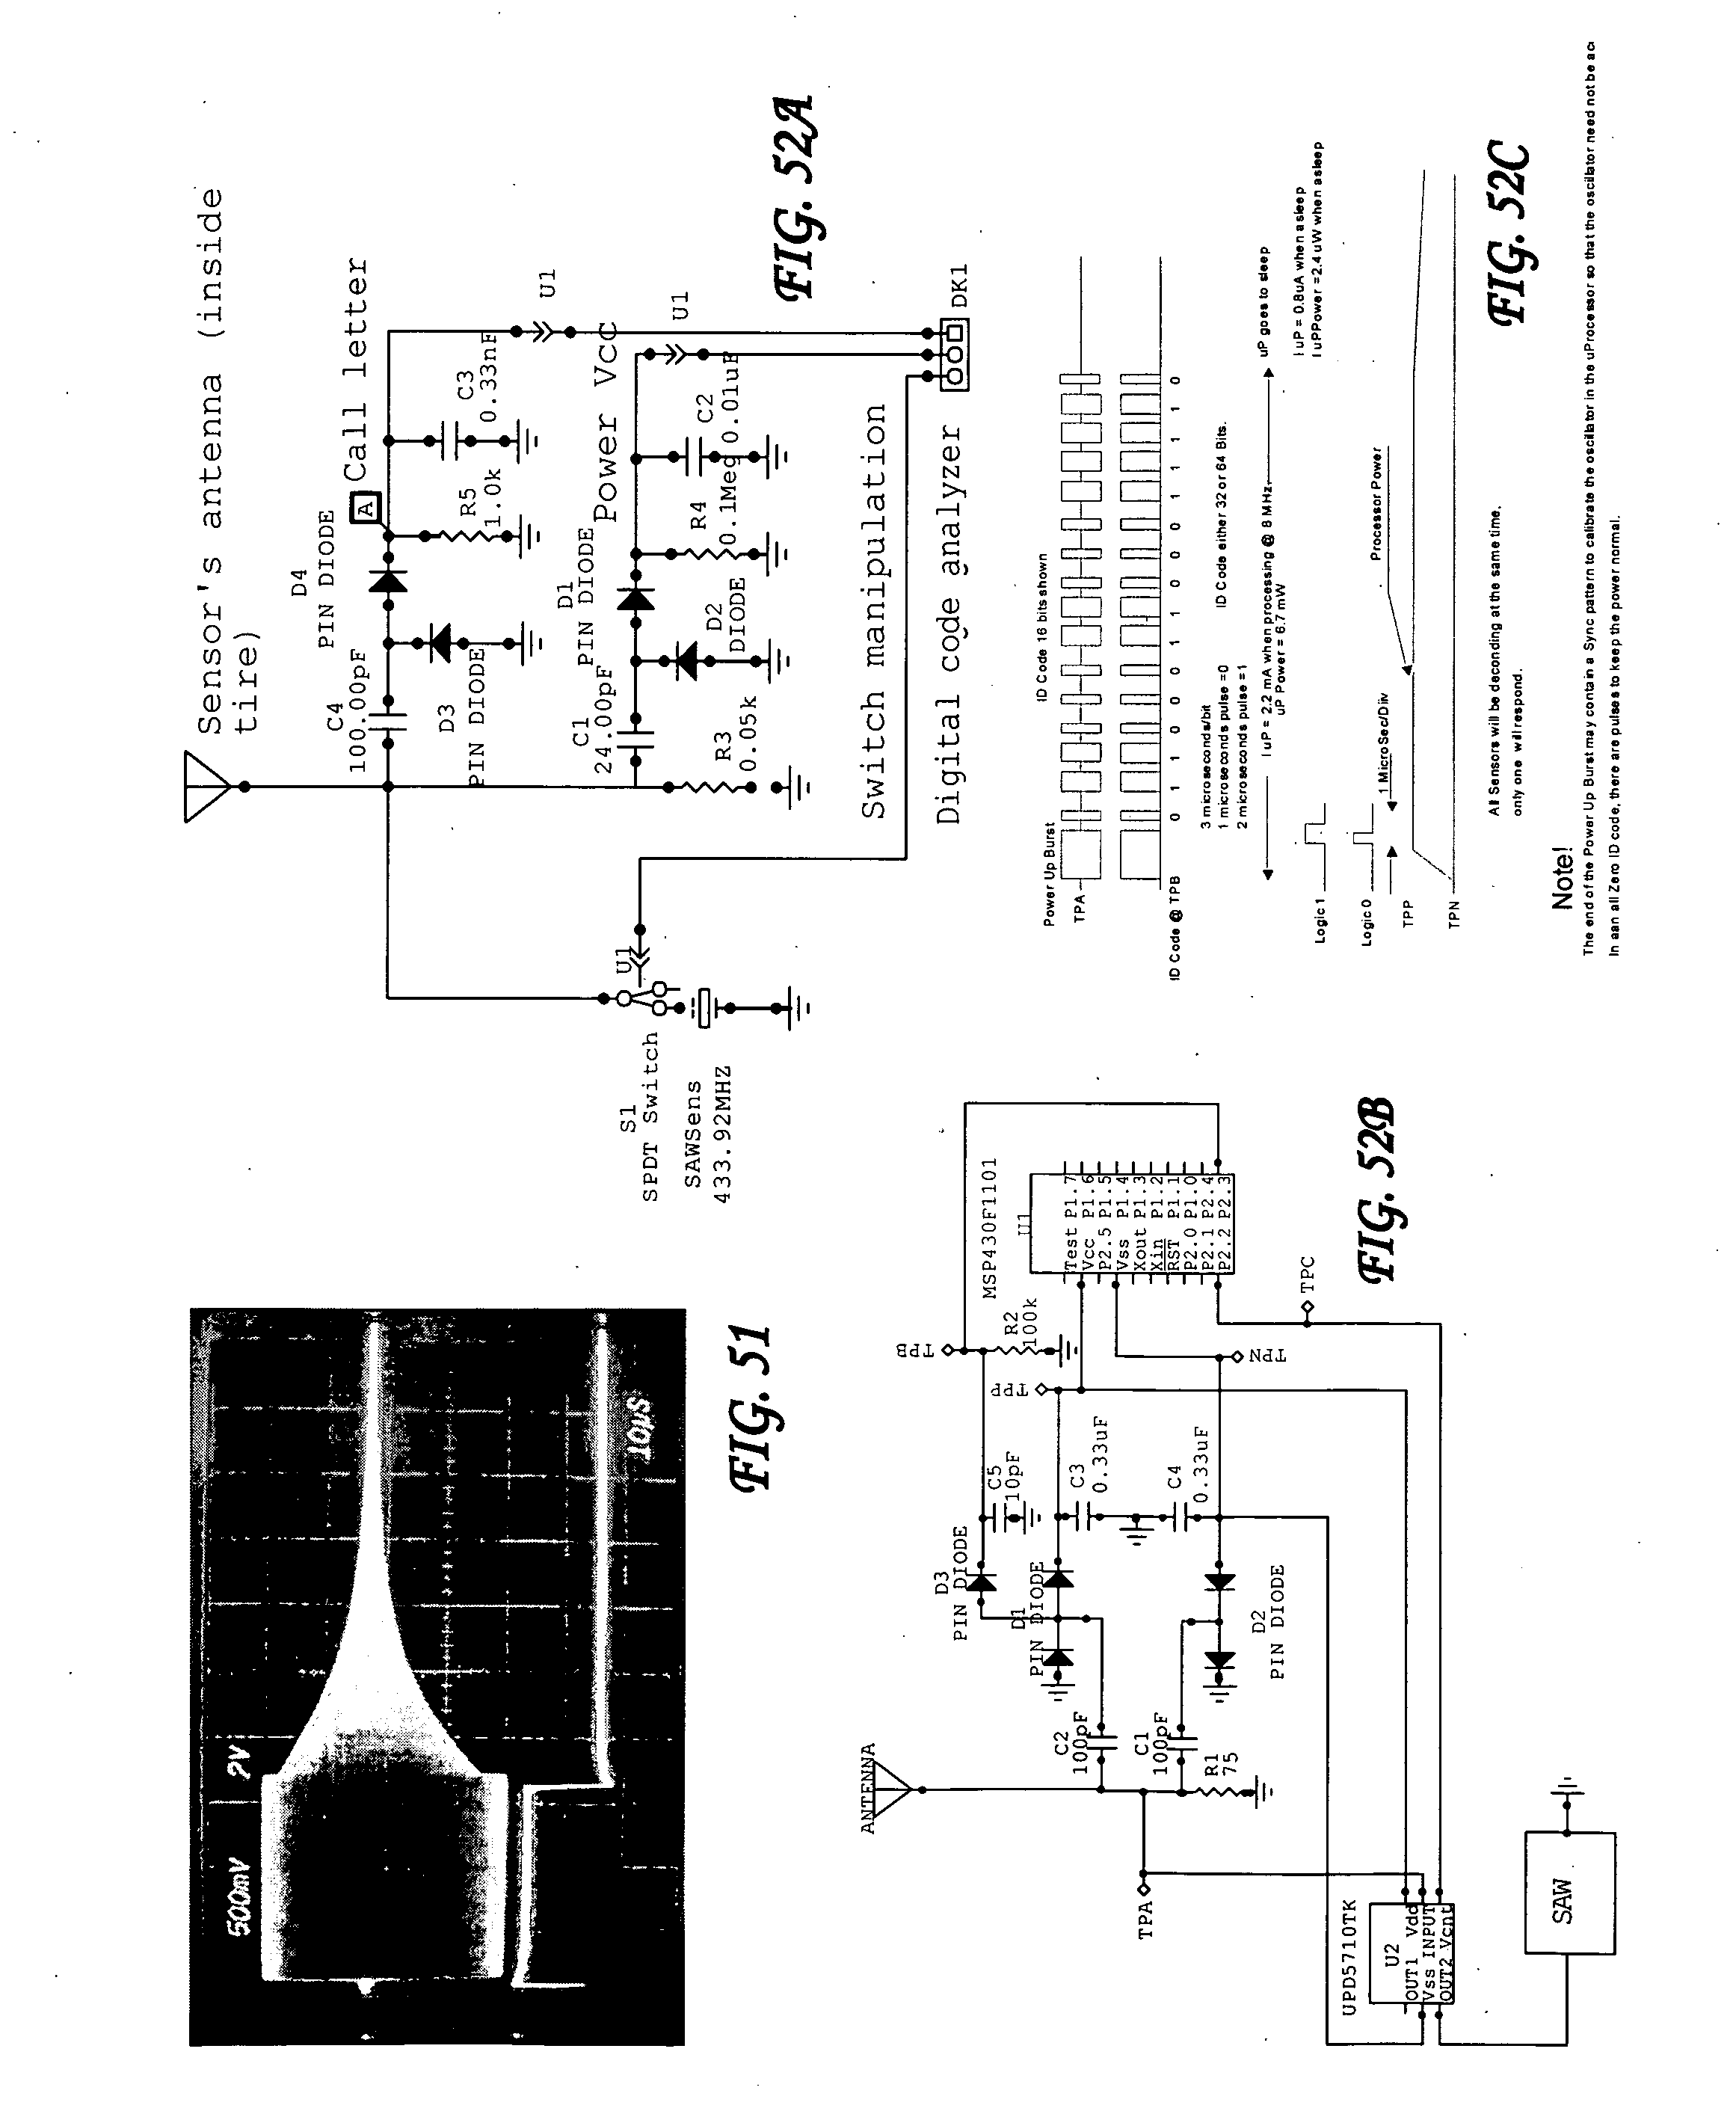 Patent Us20060025897 Sensor Assemblies Google Patentsuche High Potential Circuits 3 6 Spark Arresting For Reed Relays Drawing